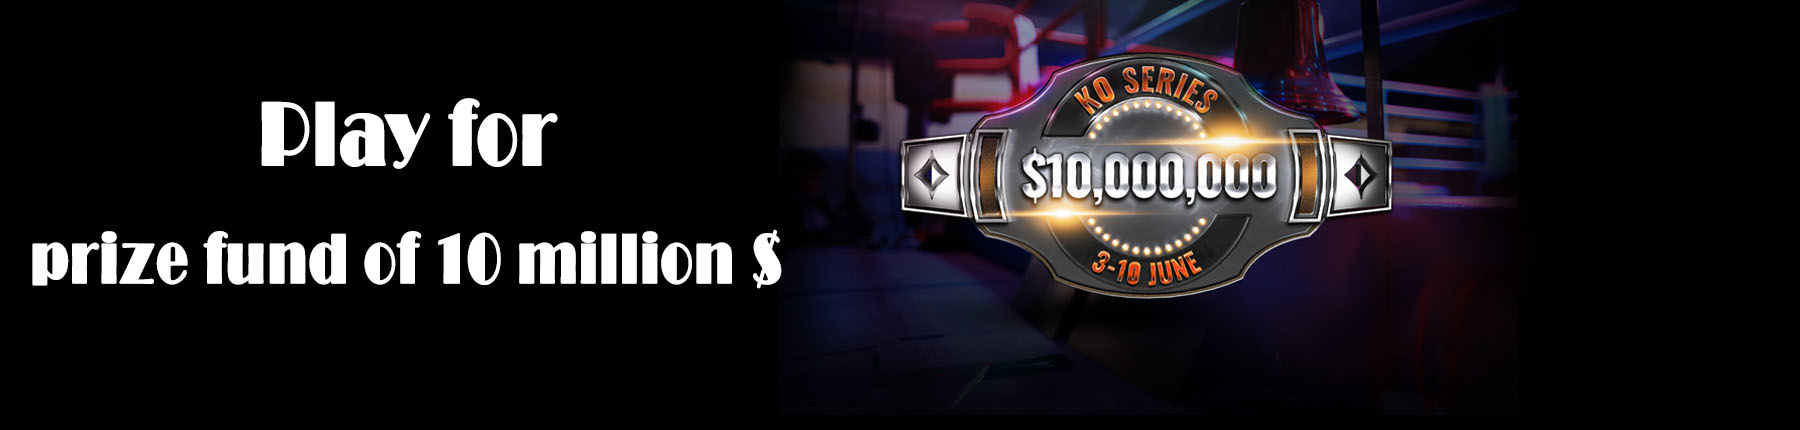 KO Series is a tournament festival with a $ 10,000,000 guarantee on PartyPoker.